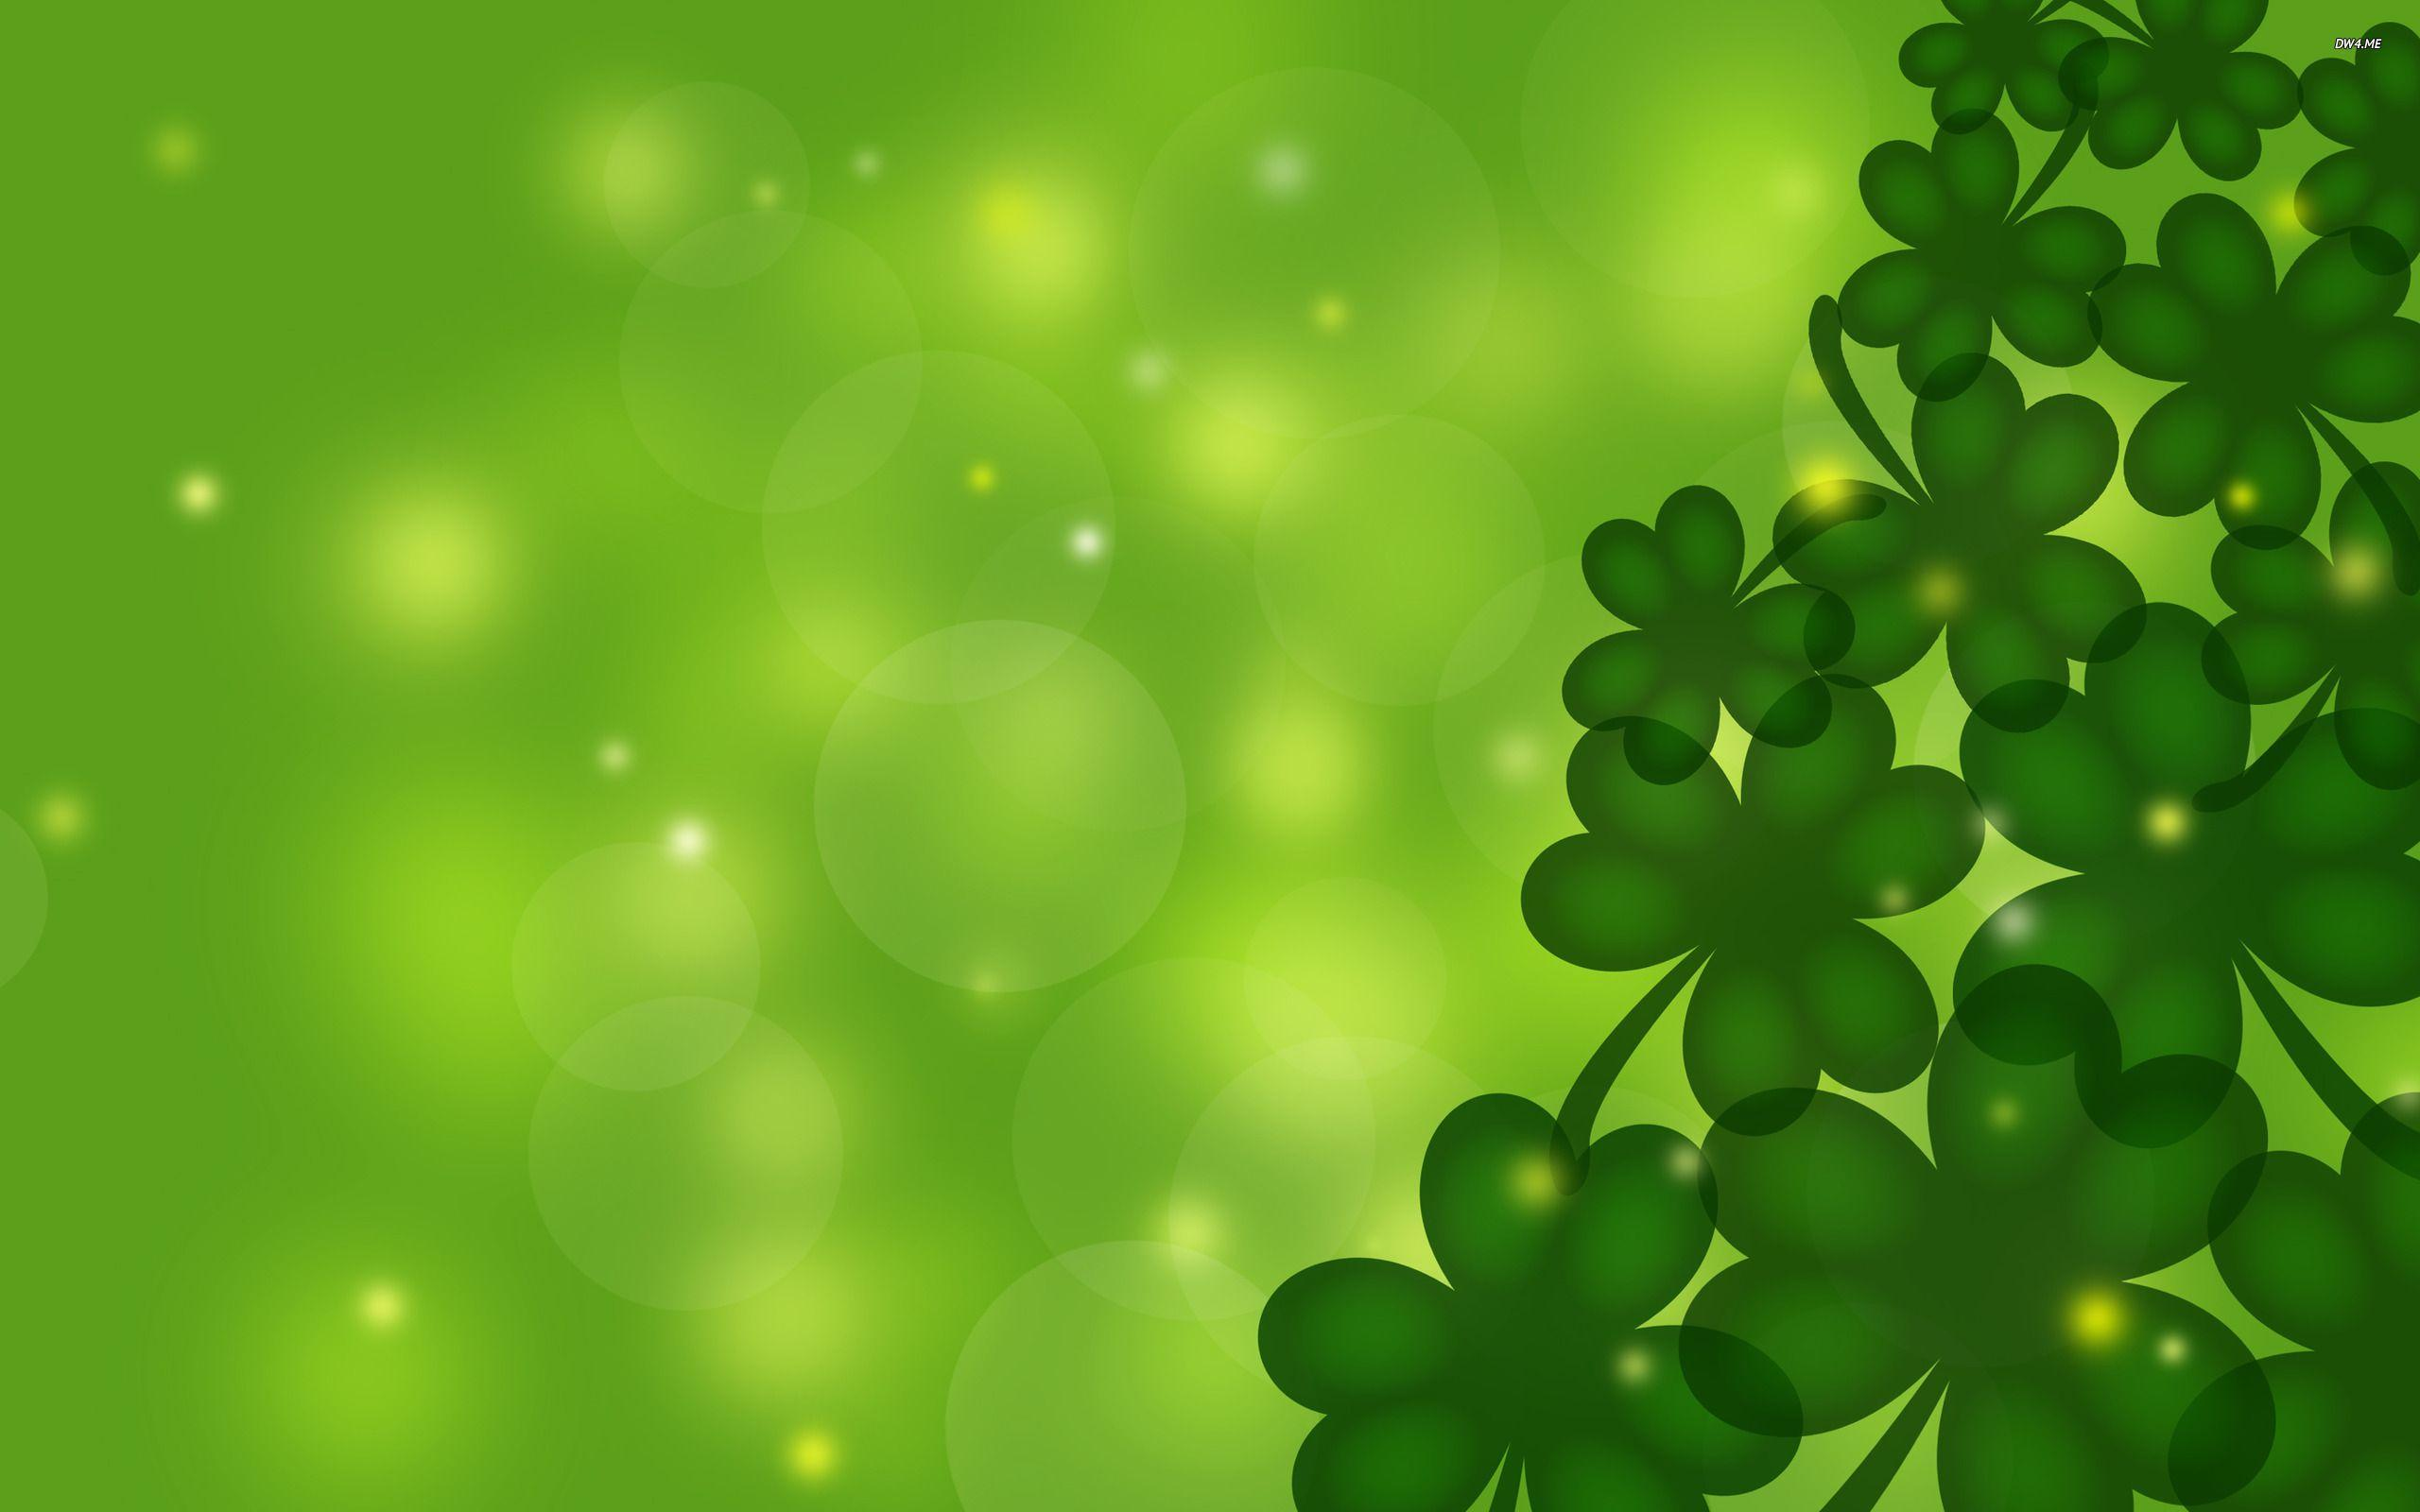 Fresh Shamrock Wallpapers - All For You Wallpaper Site